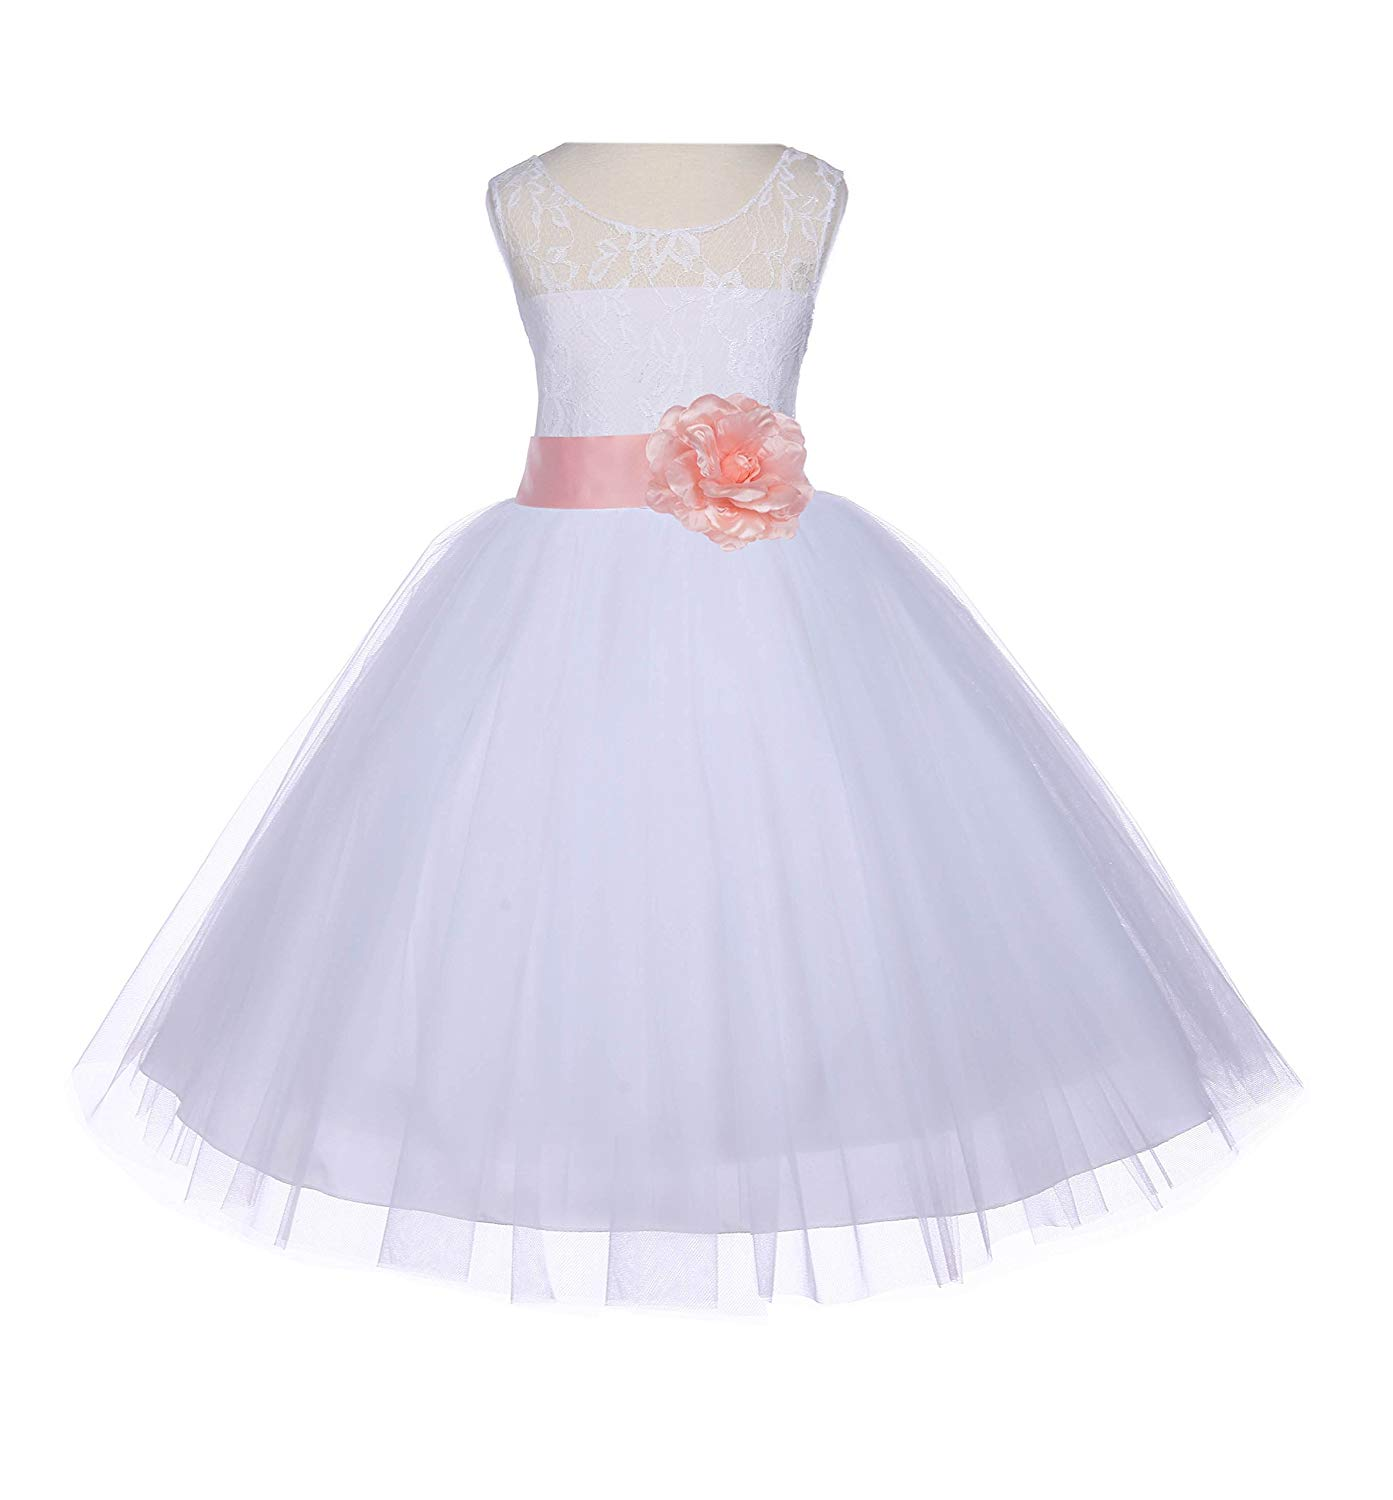 ekidsbridal White Floral Lace Bodice Tulle Flower Girl Dress Wedding Tulle Dresses 153T